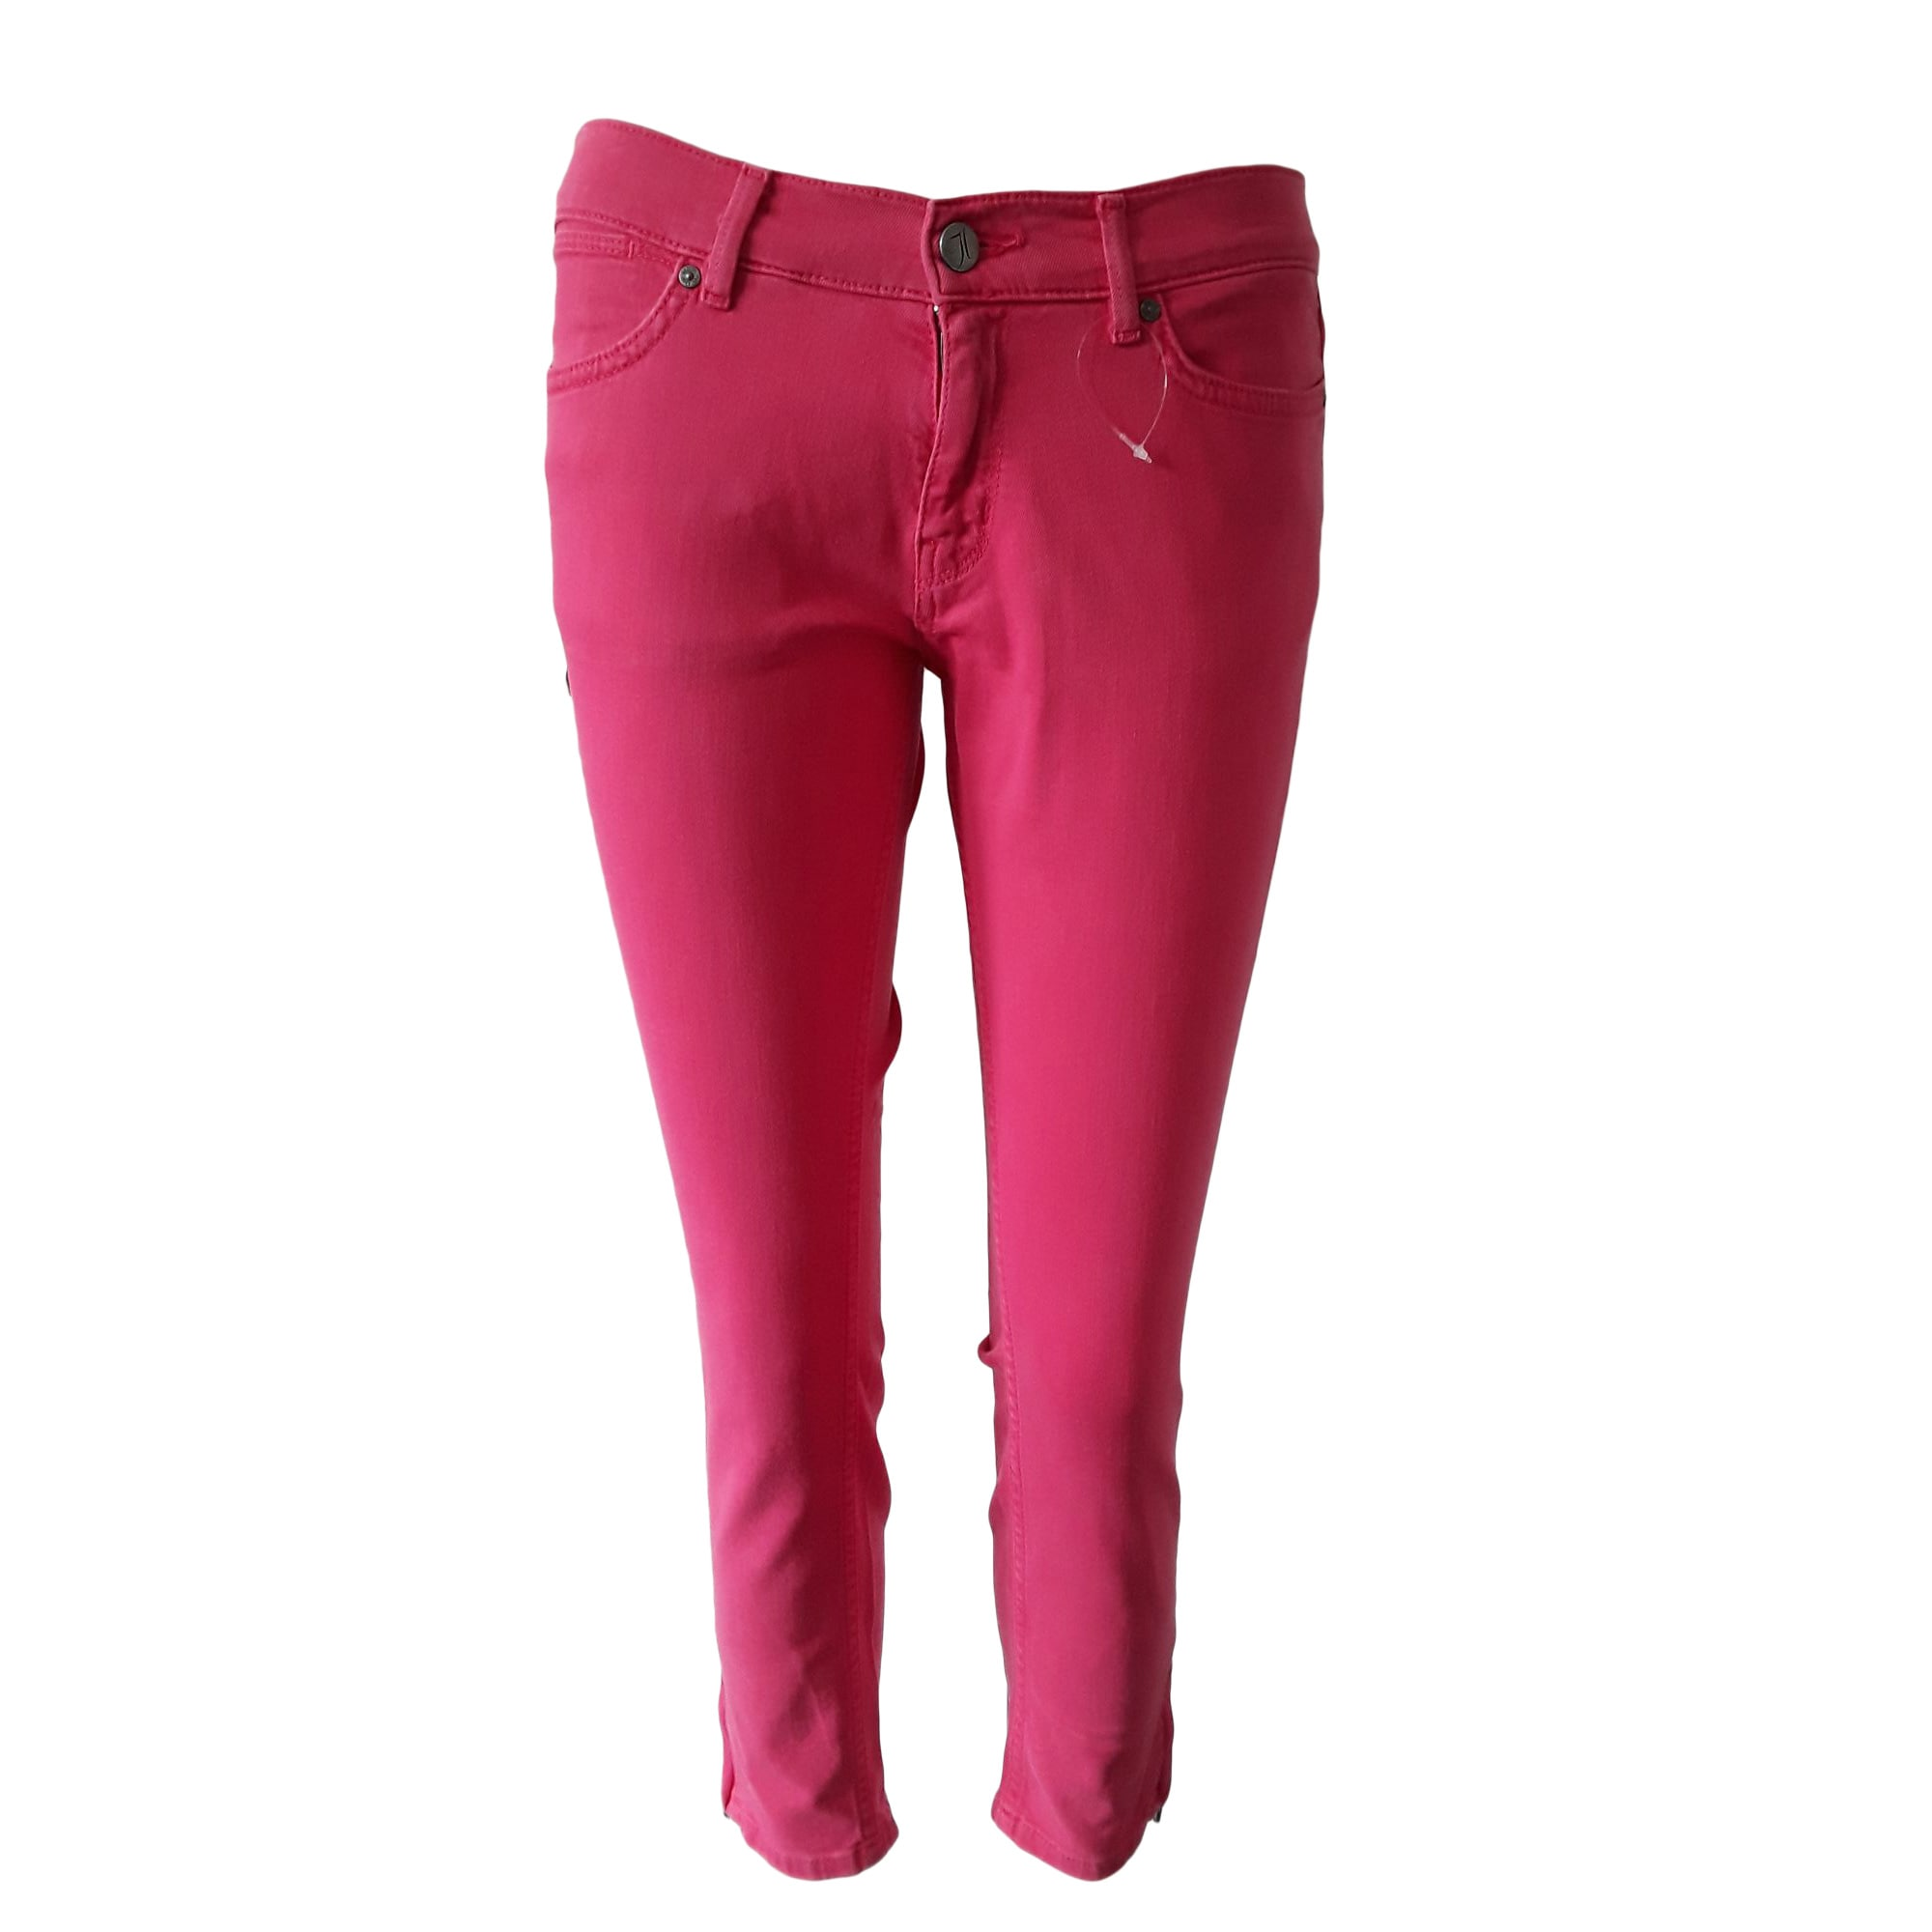 pantalon tommy hilfiger rose